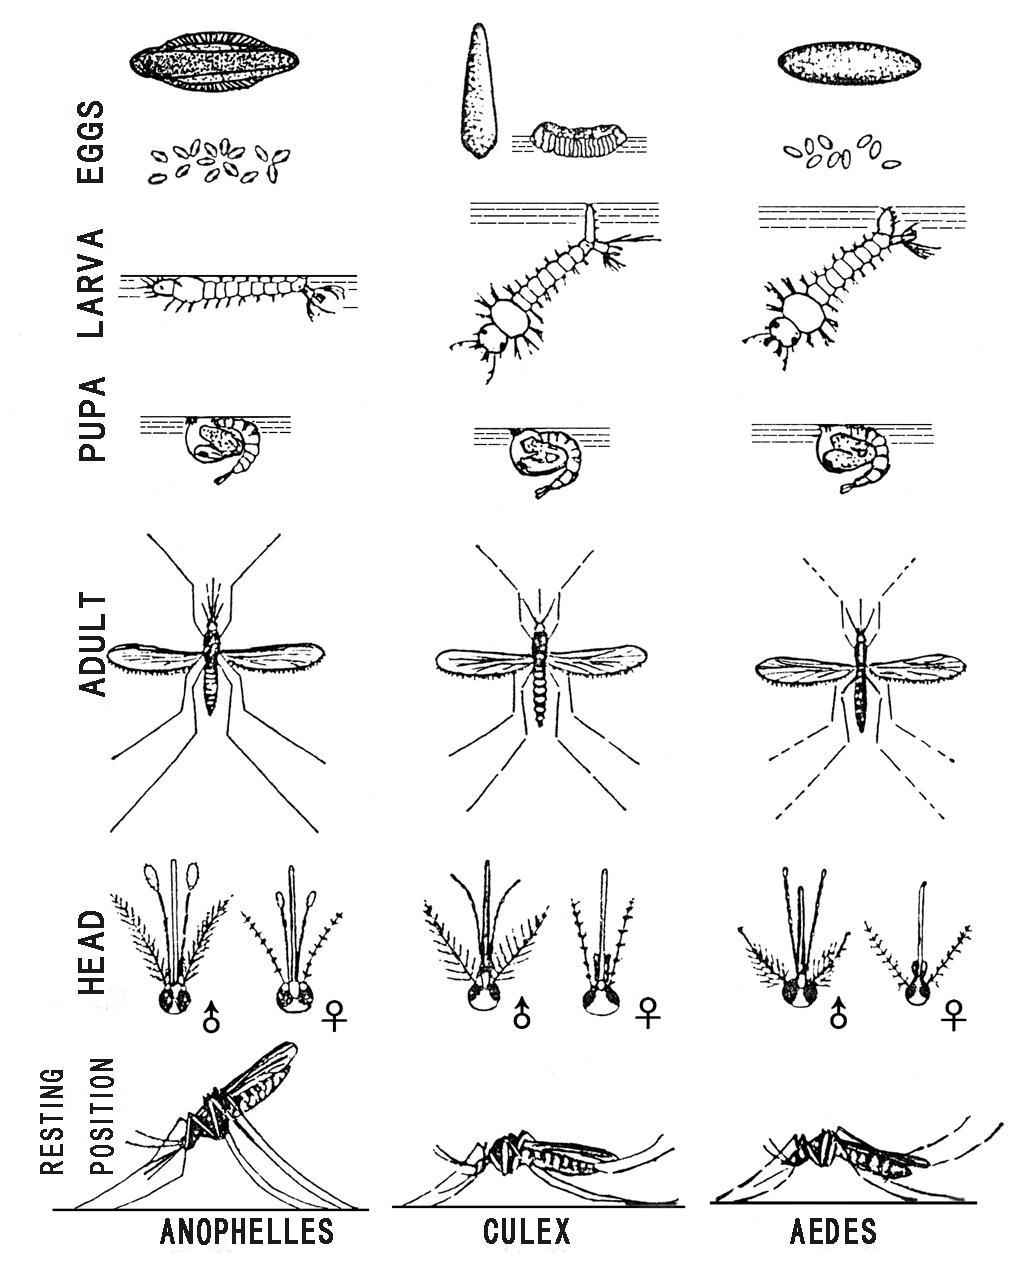 How To Identify Culex Anopheles And Aedes Mosquitoes And